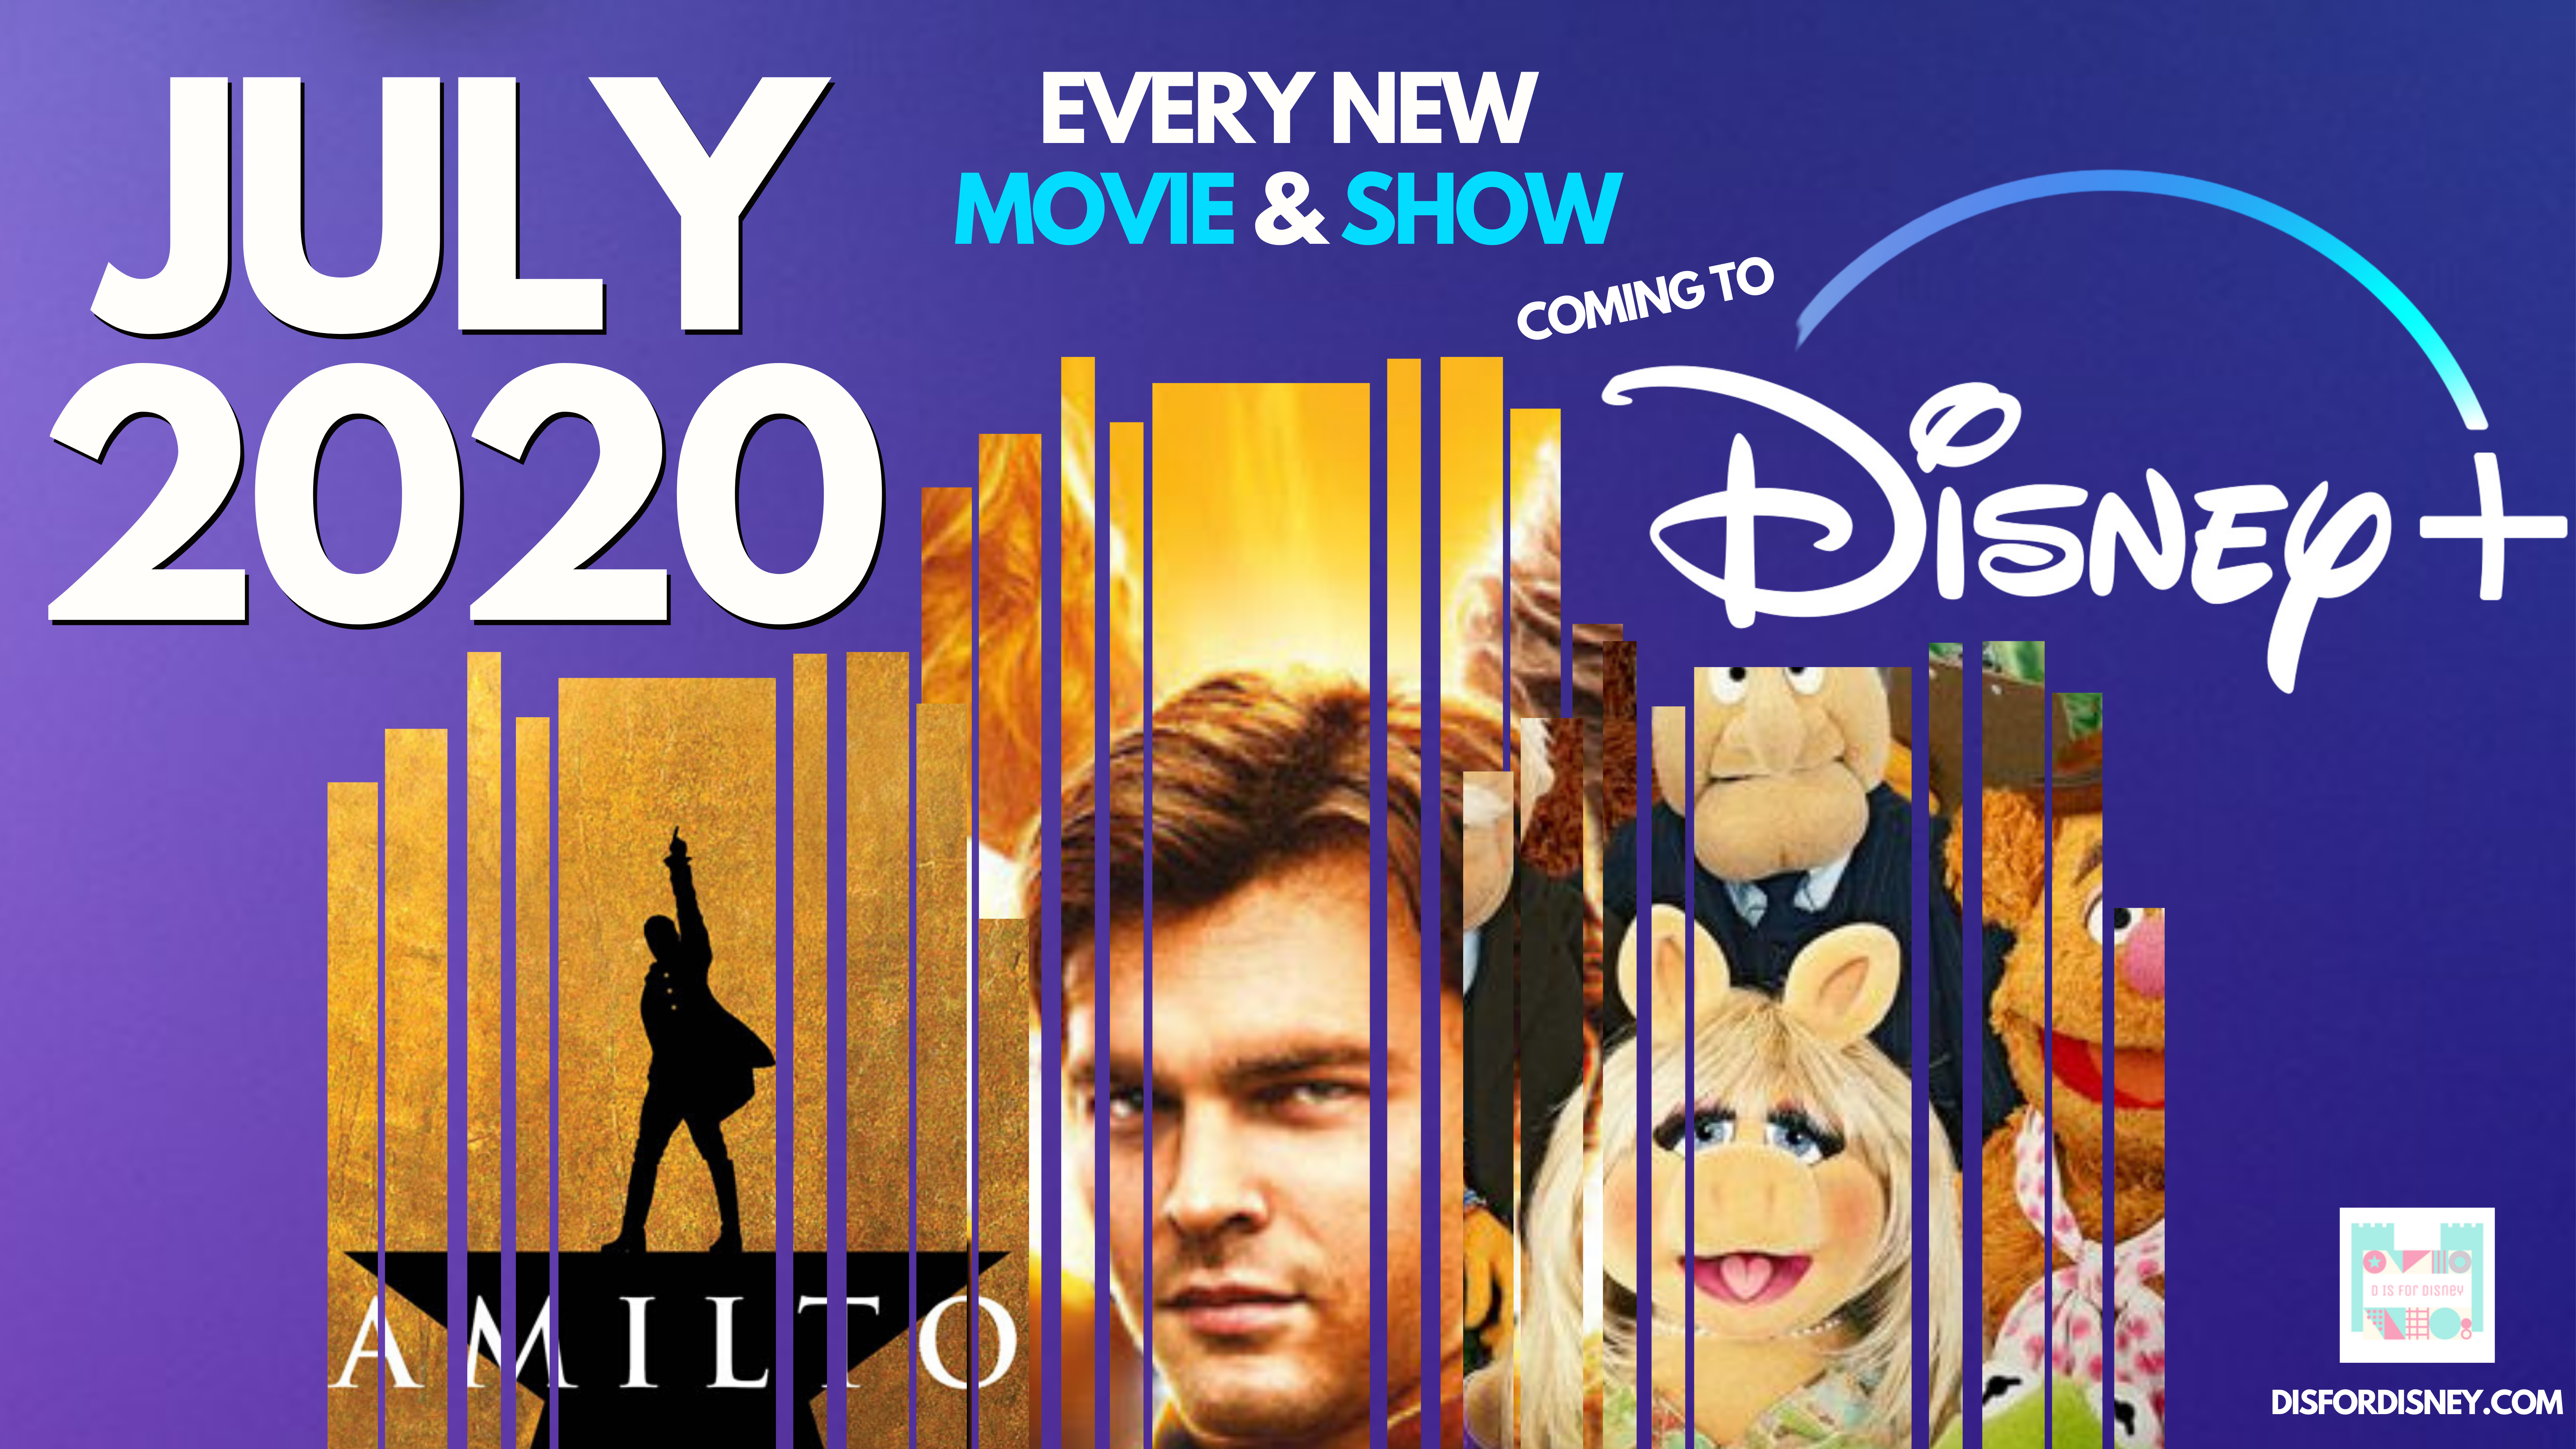 Everything Coming to Disney+ July 2020: Full Release Schedule